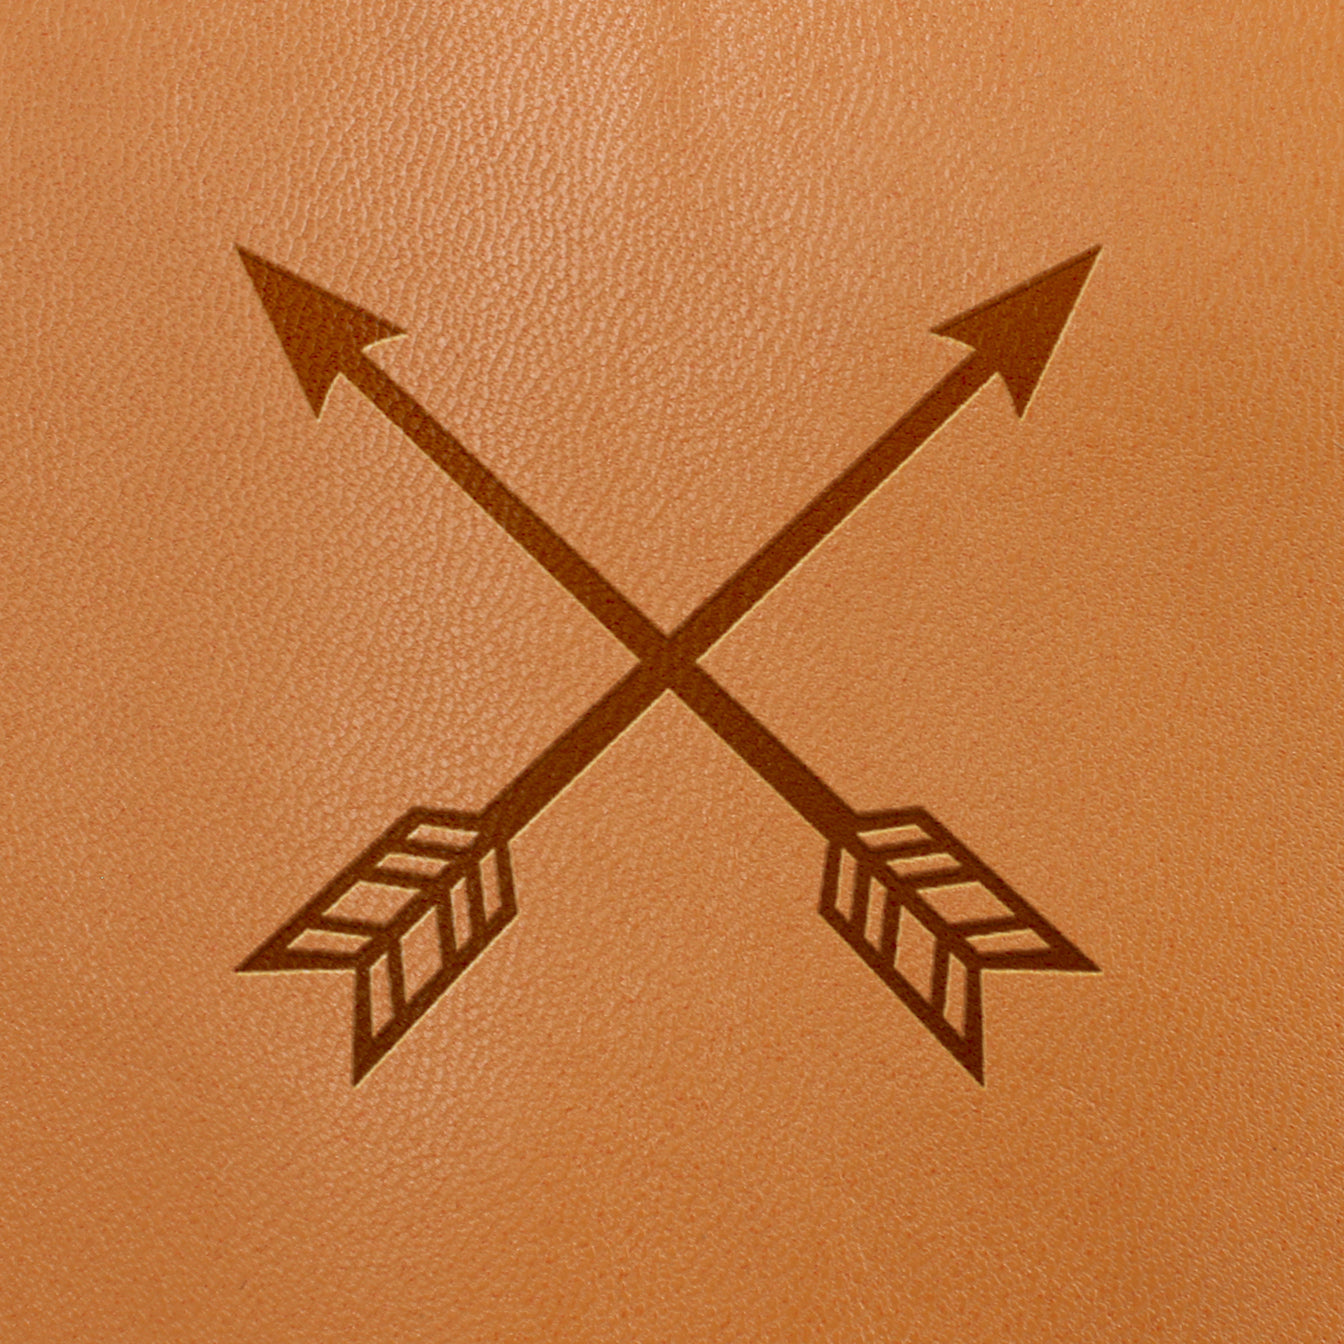 Crossed Arrow Symbol - Fire Branded Images